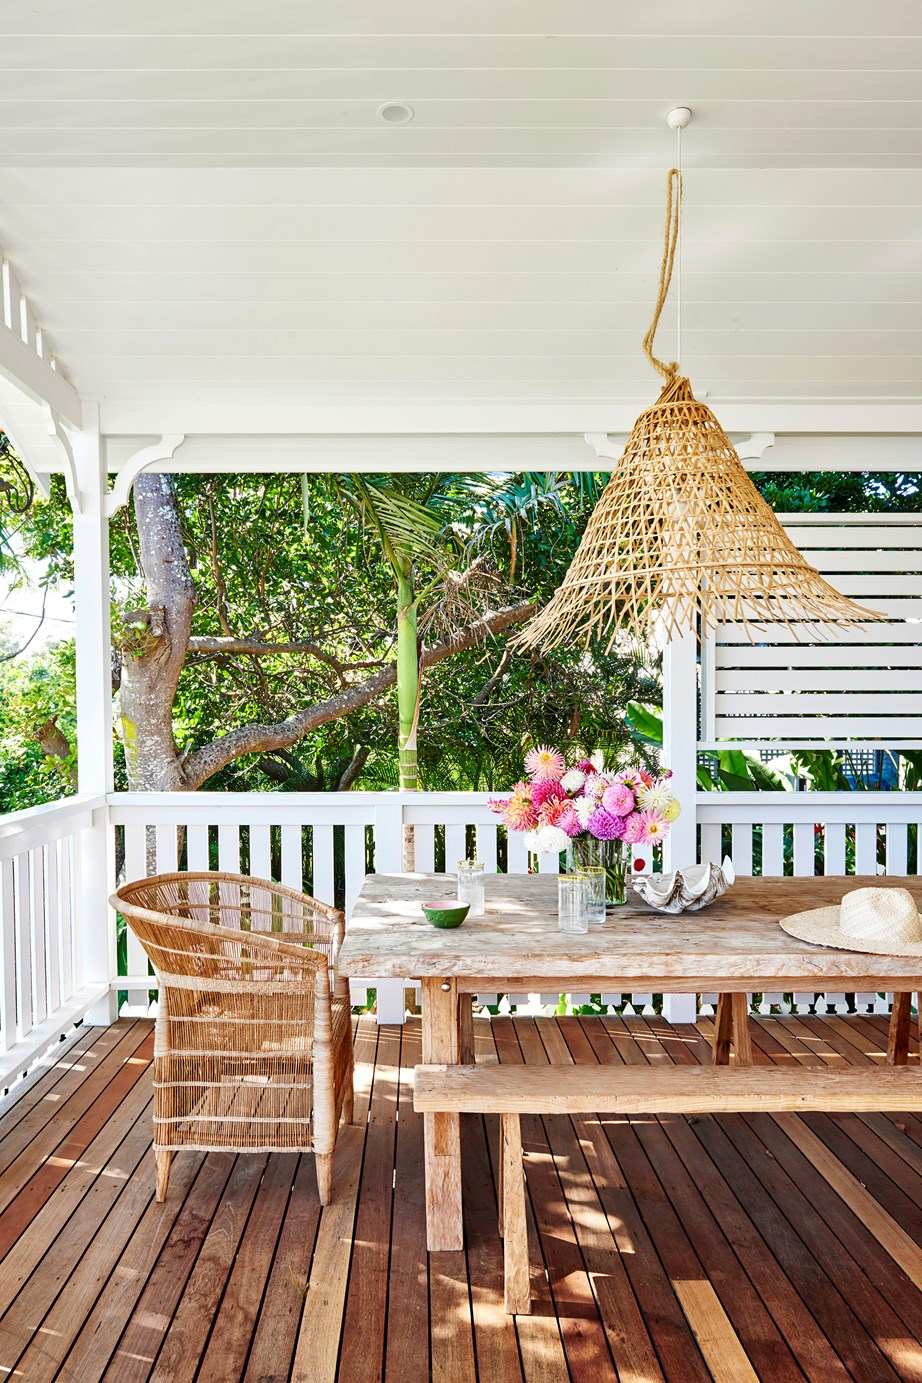 """A timber table and benches custom-made in Bali, paired with Malawi chairs from Greedilulu and a woven pendant from Bisque create a wonderfully laidback setting in this [Byron Bay home](https://www.homestolove.com.au/coastal-cottage-byron-bay-20442 target=""""_blank"""")."""